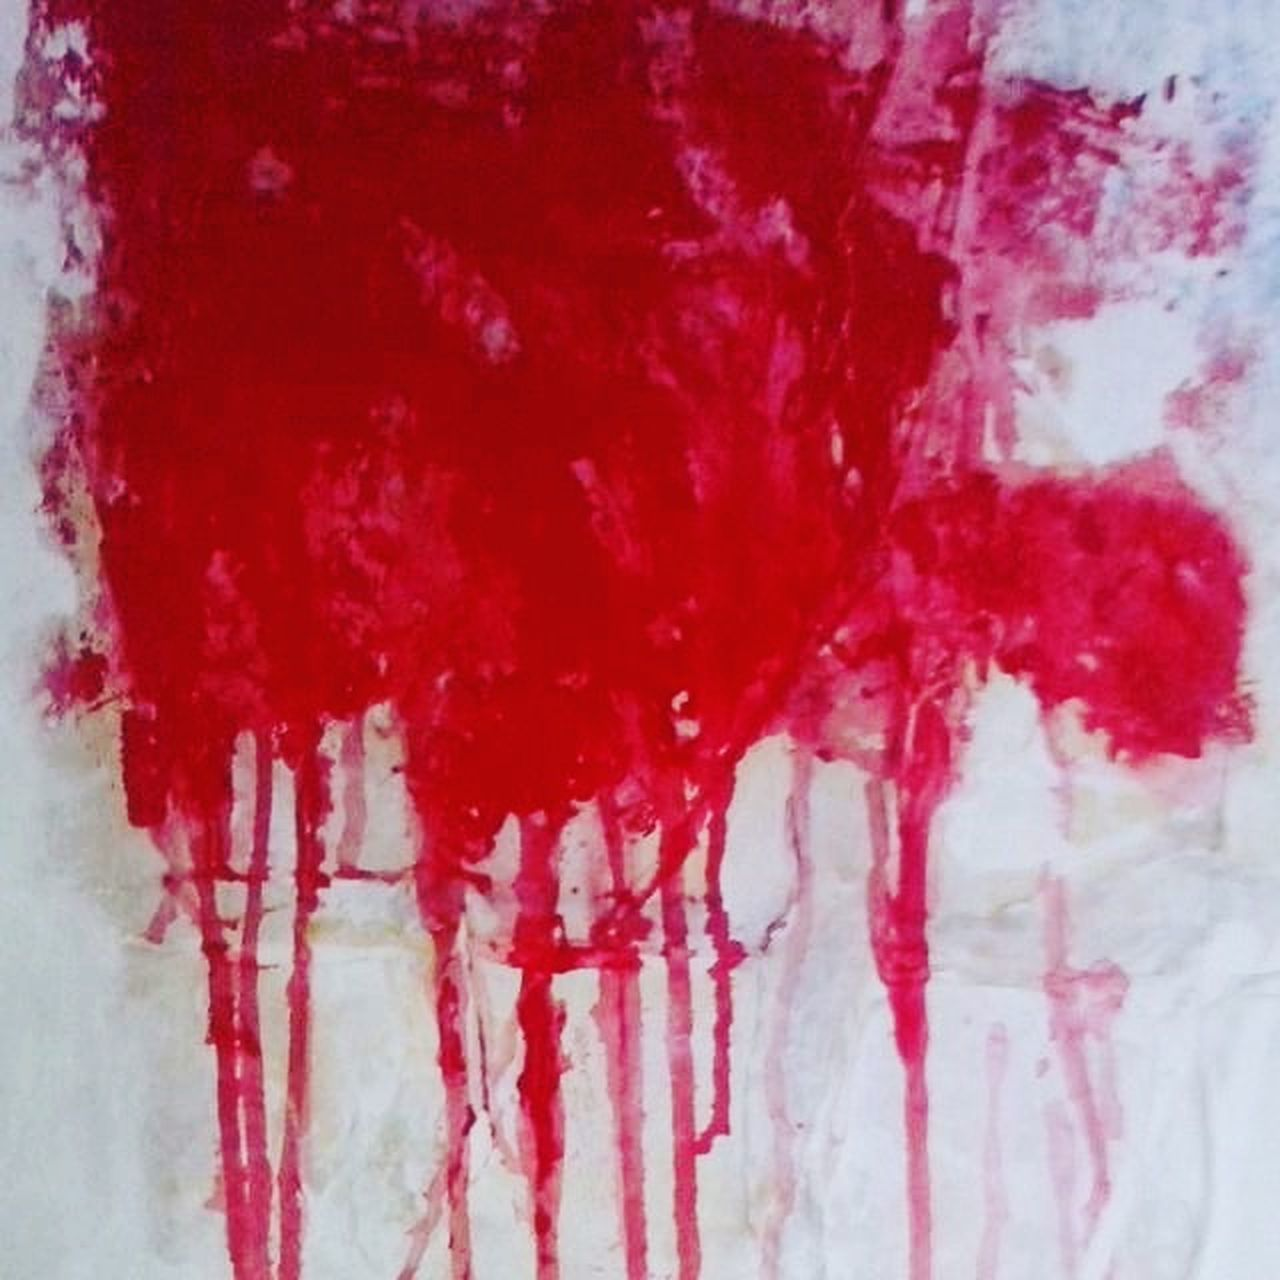 Red Paint Textured  Abstract Backgrounds No People Abstract Art Abstractions In Colors Acrylic Acrylic Painting Expressionism